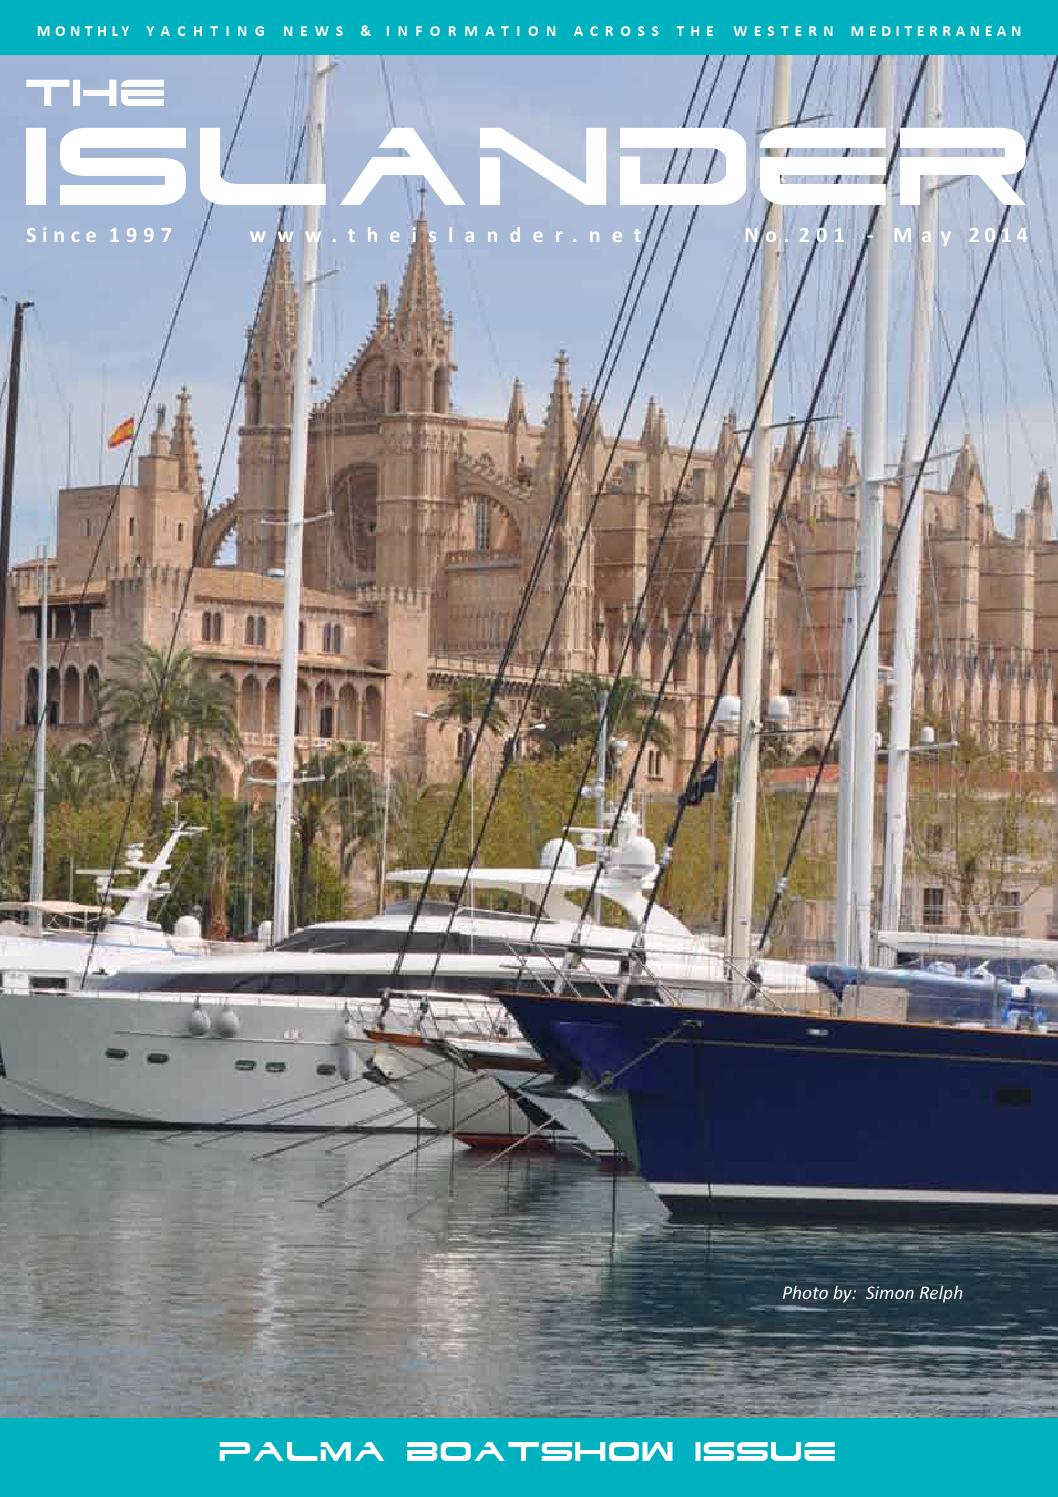 The Islander May 2014 by Simon Relph - issuu